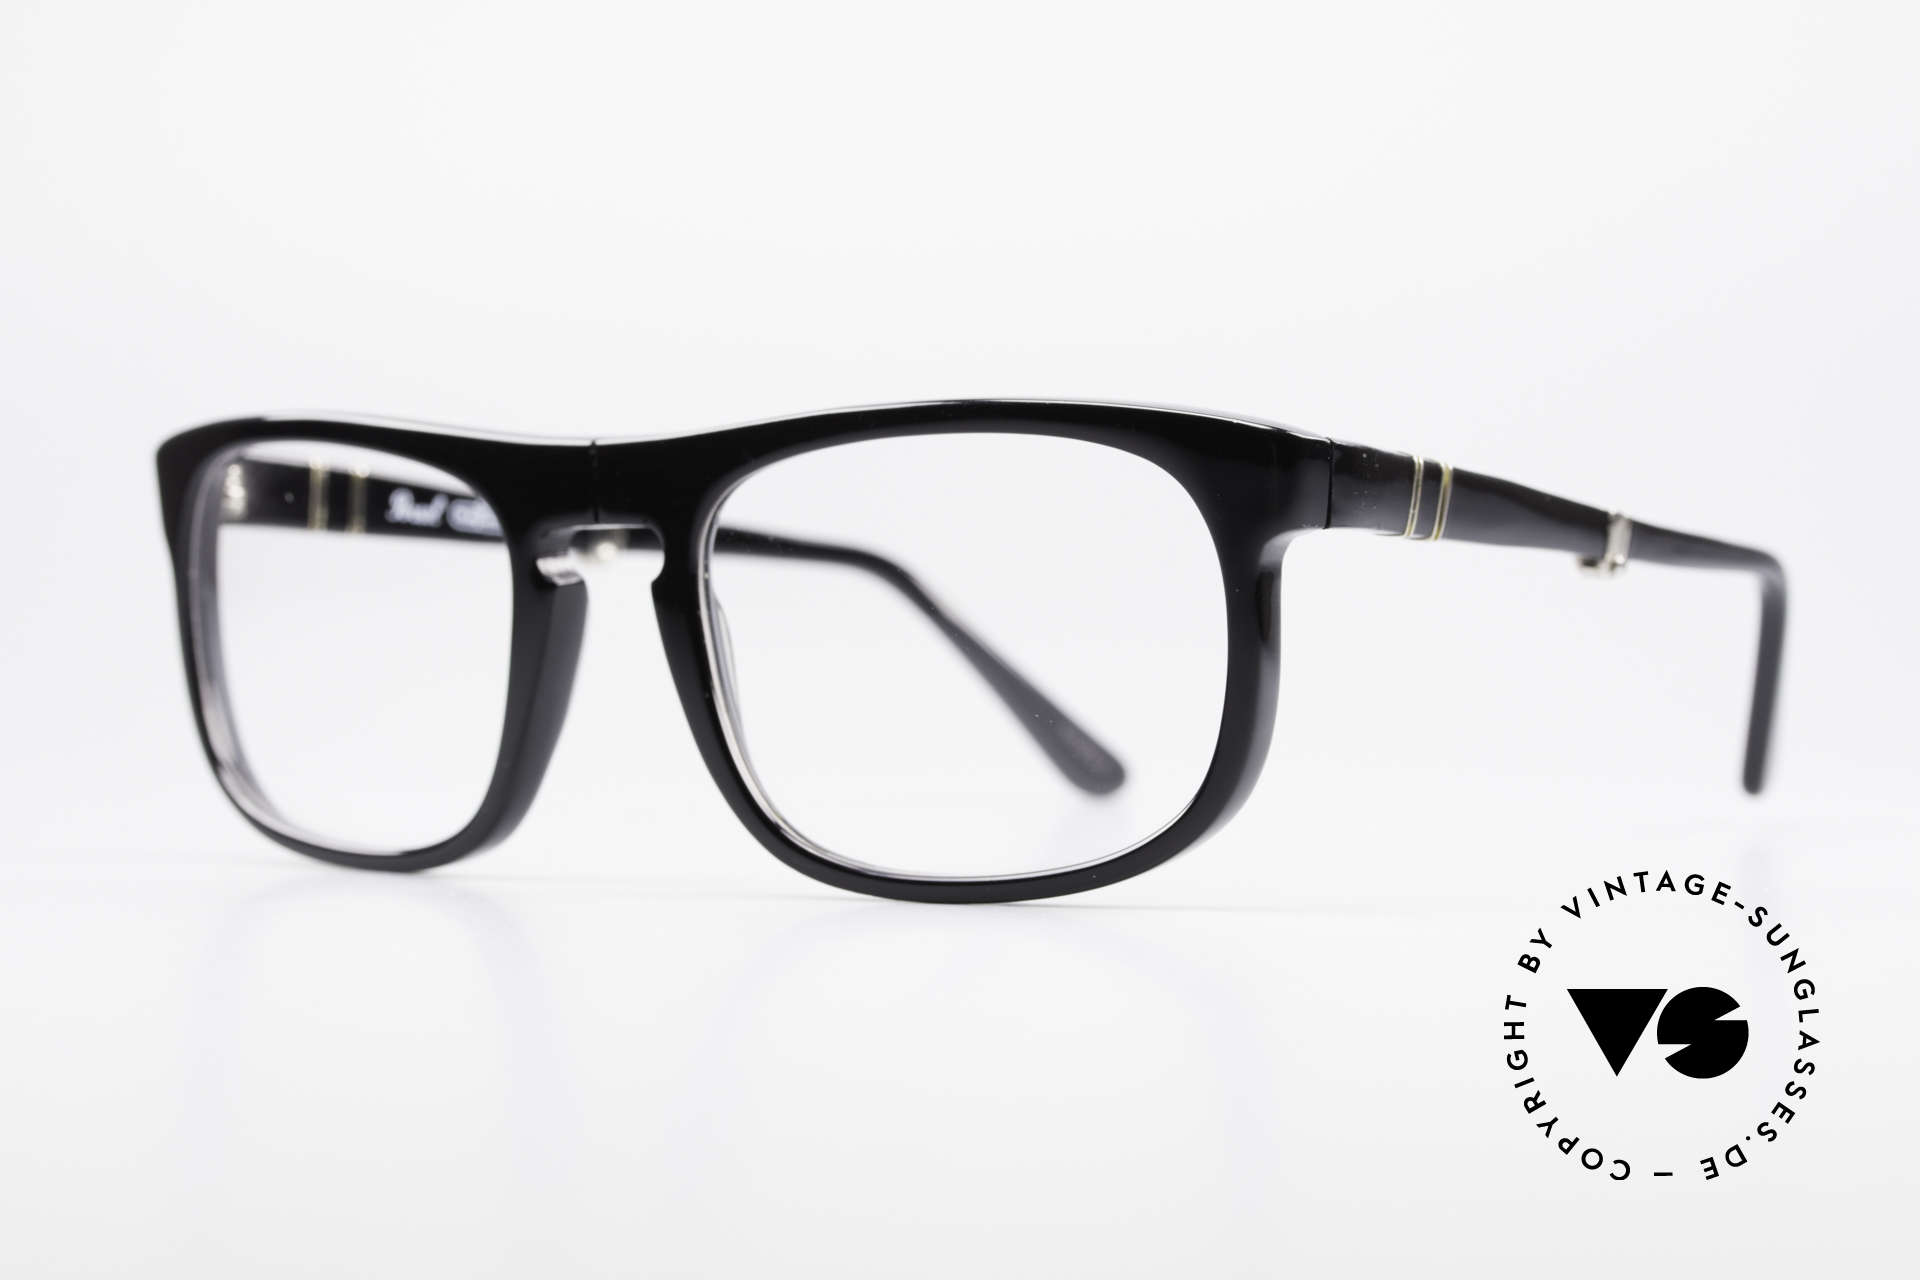 Persol Ratti 807 Folding Vintage Folding Eyeglasses, foldable frame from the legendary RATTI manufactory, Made for Men